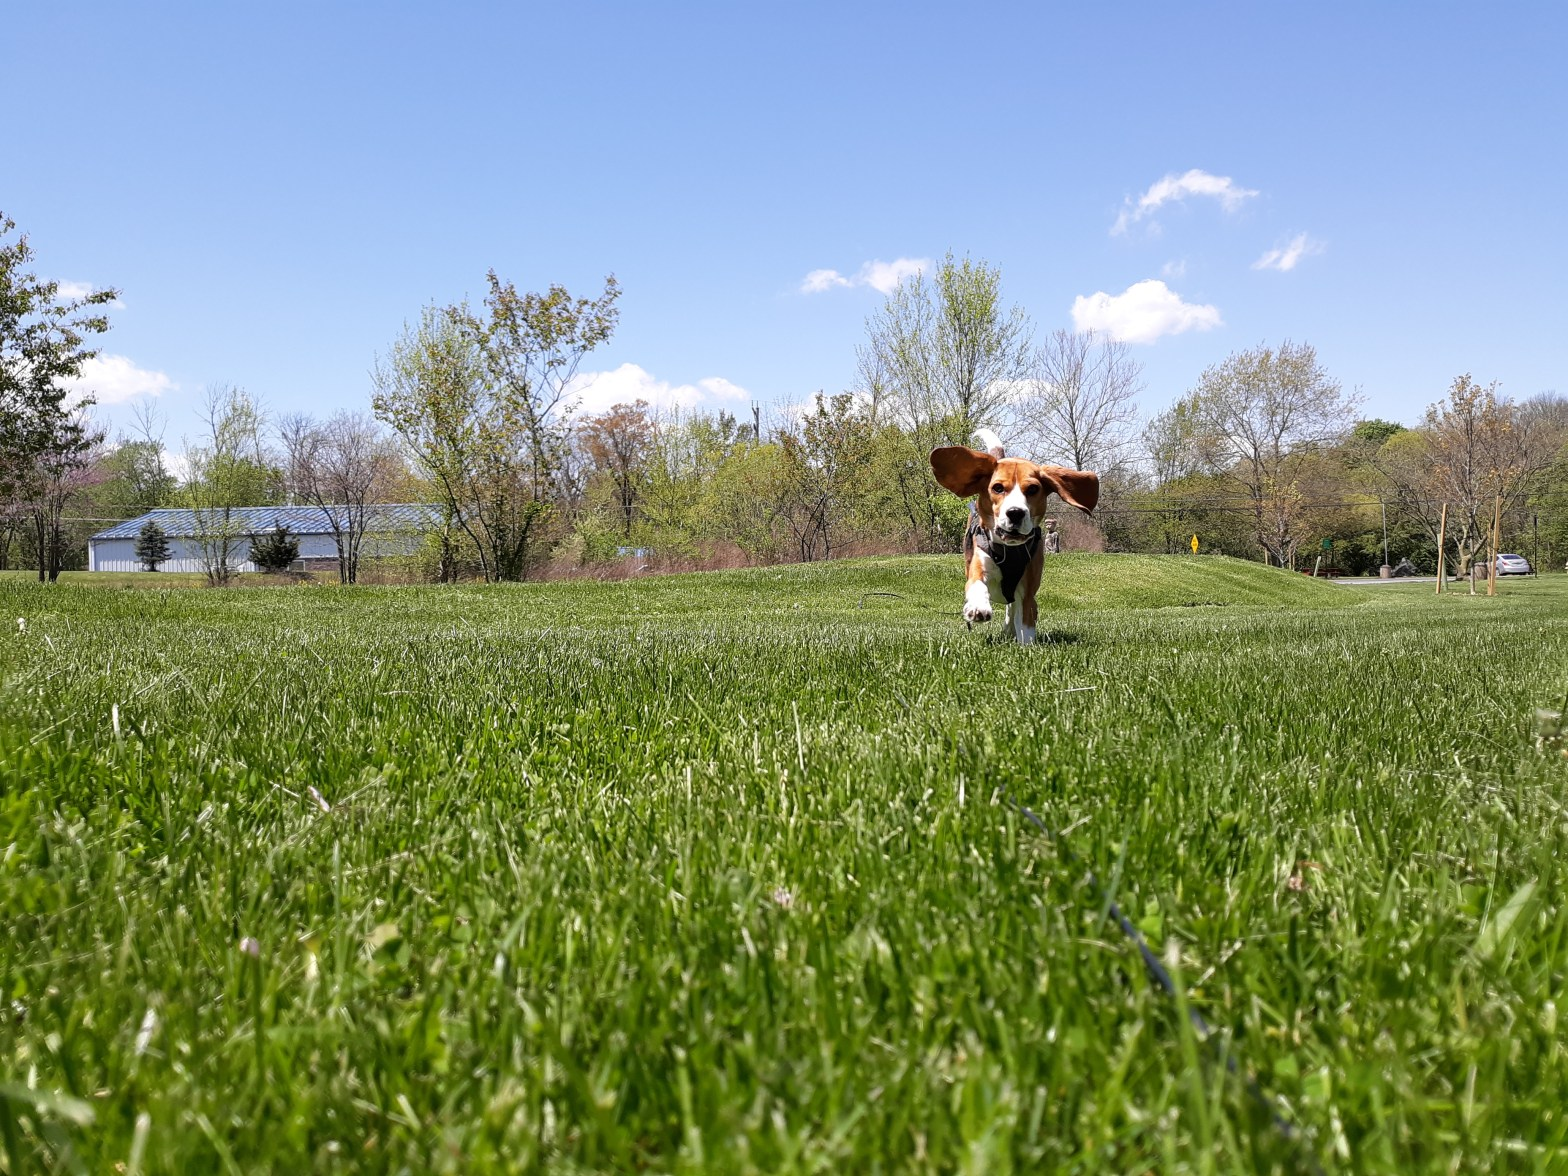 Beagle running in grass at a park